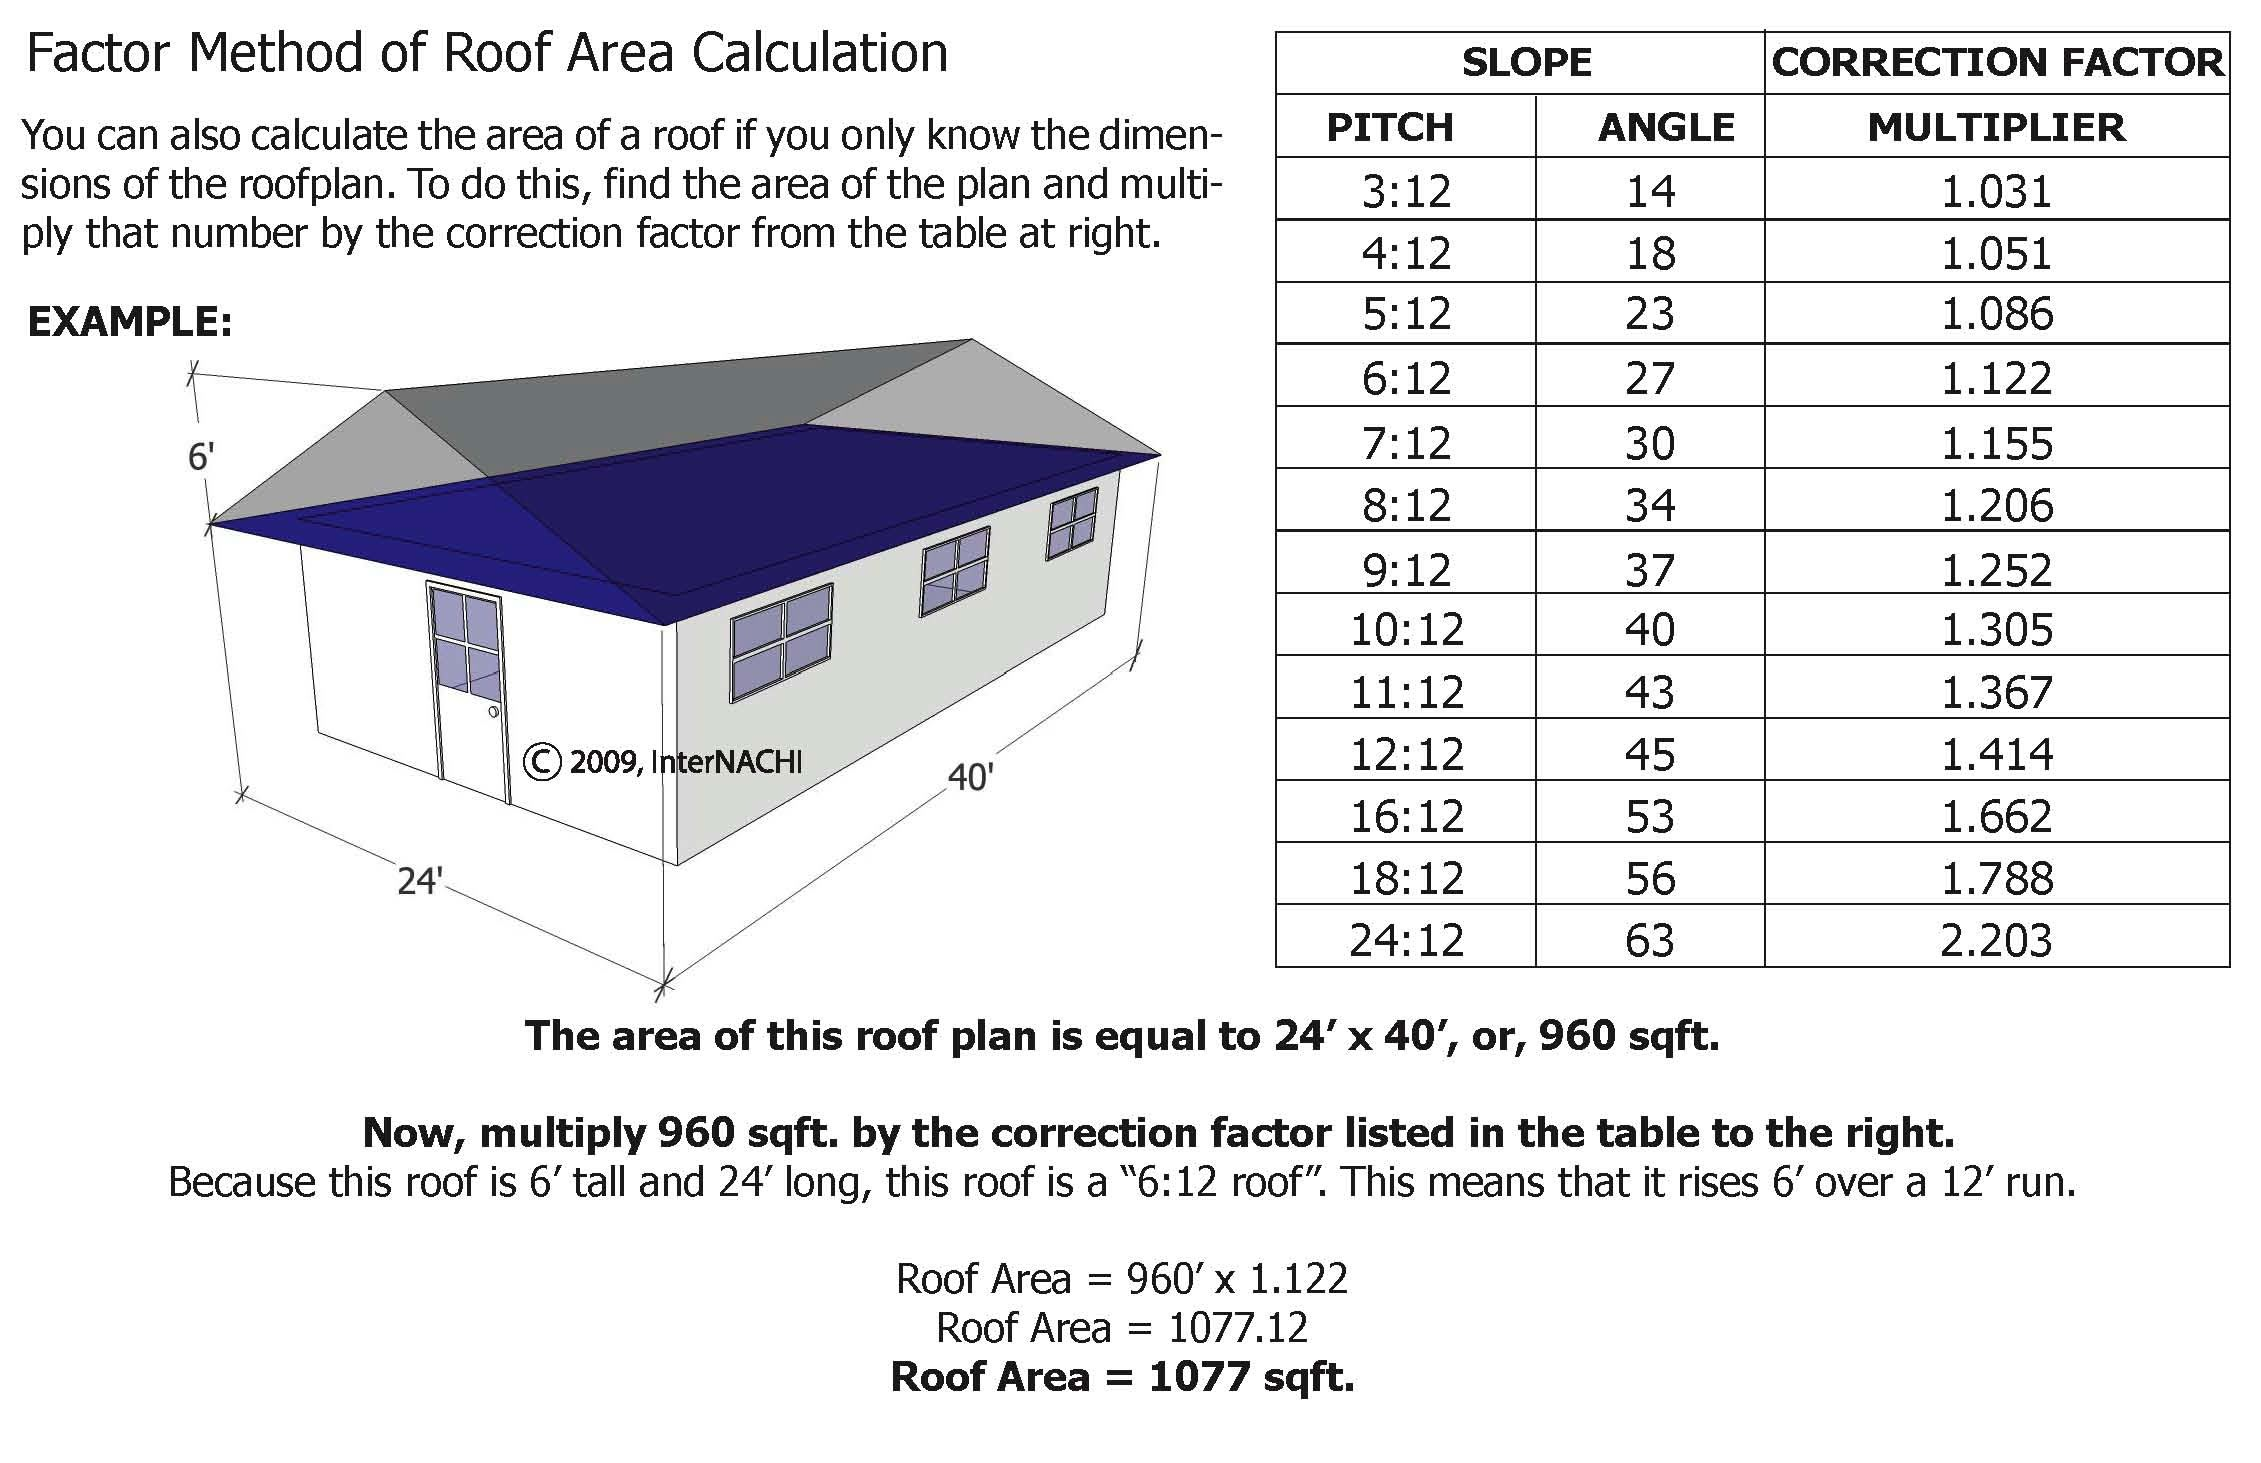 Factor method of roof area calculation.